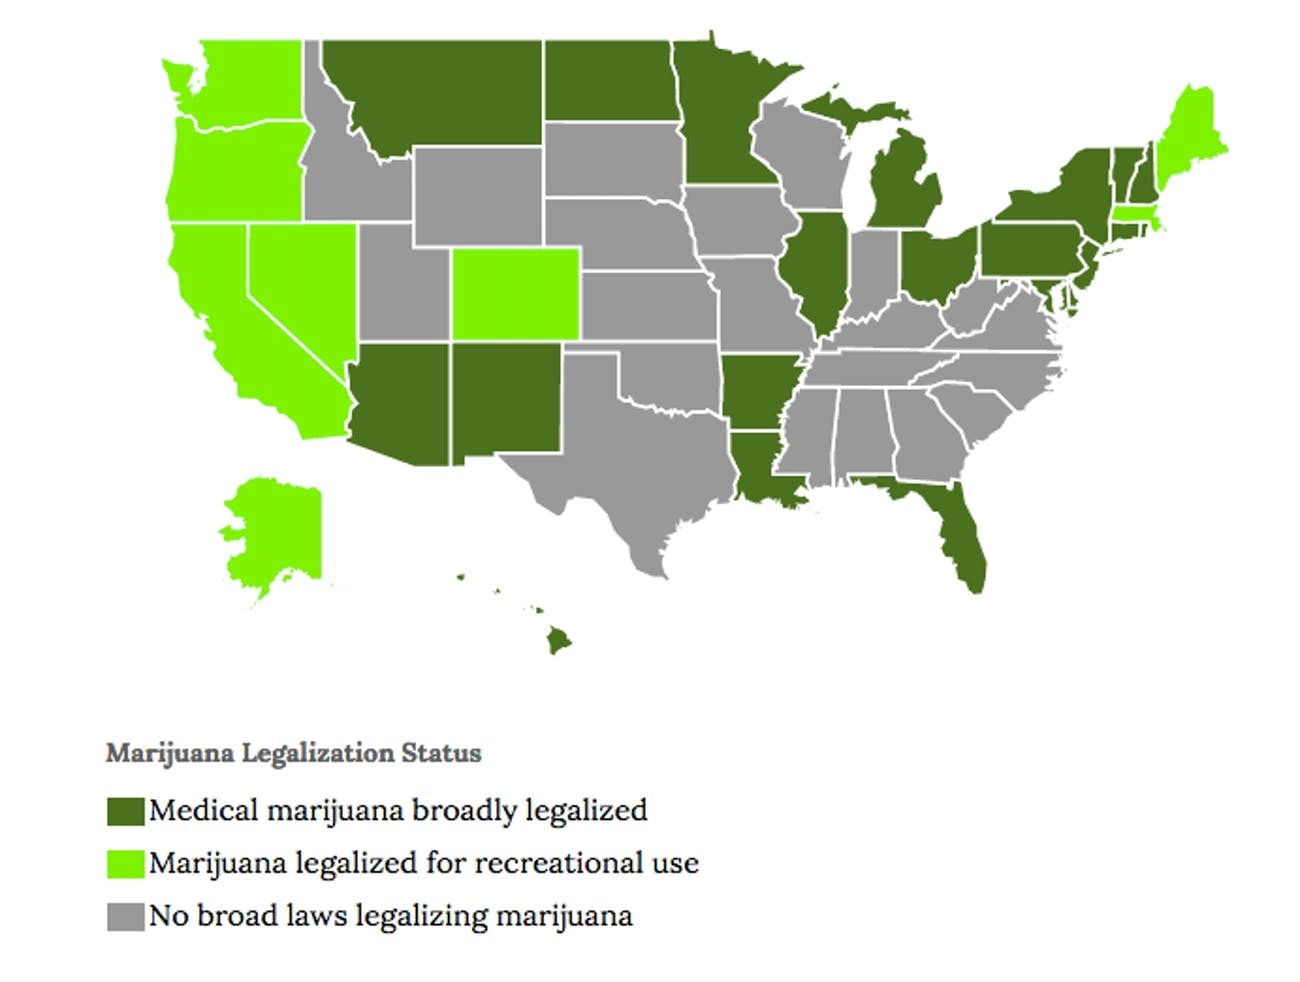 marijuana legal which states map